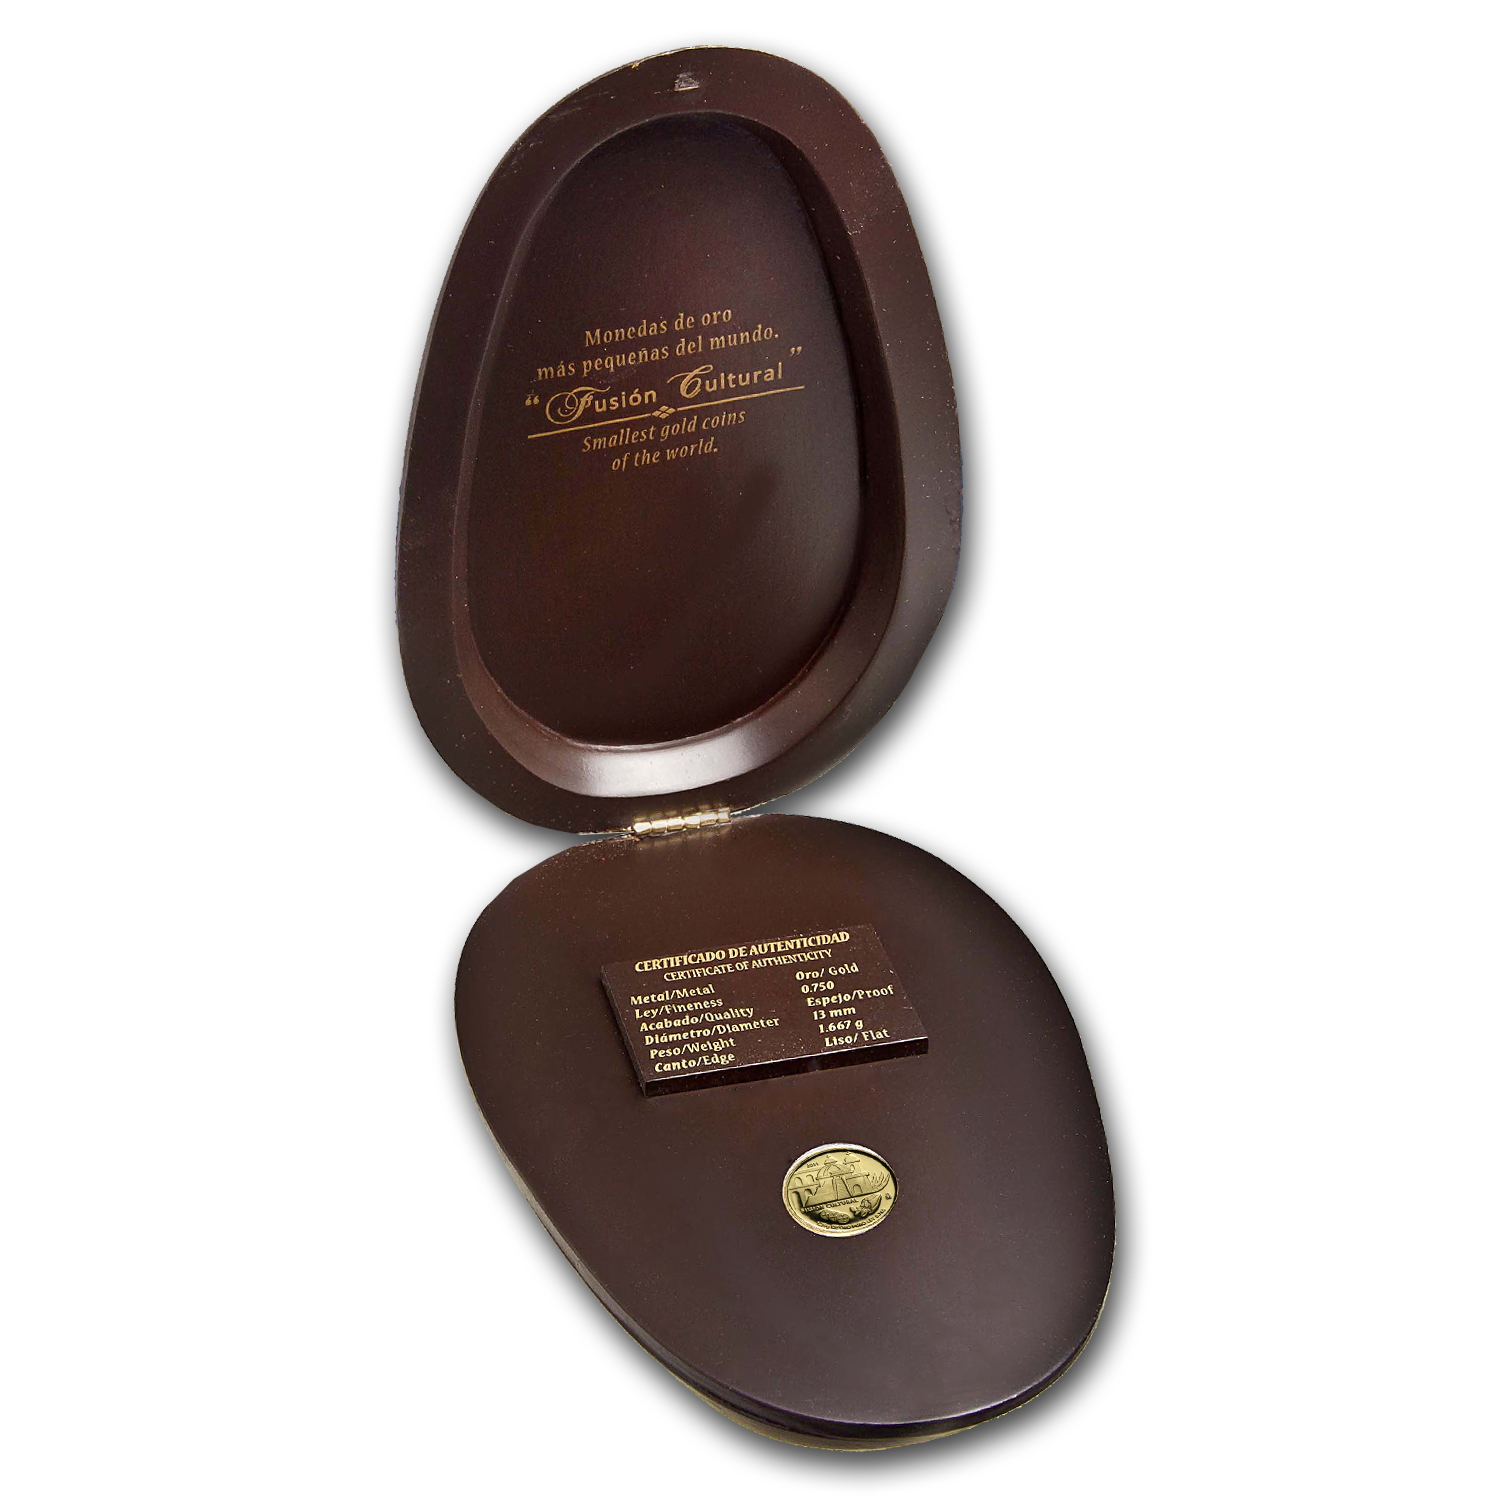 2011 Mexico Gold La Arquitectura Proof (Cacao bean case)